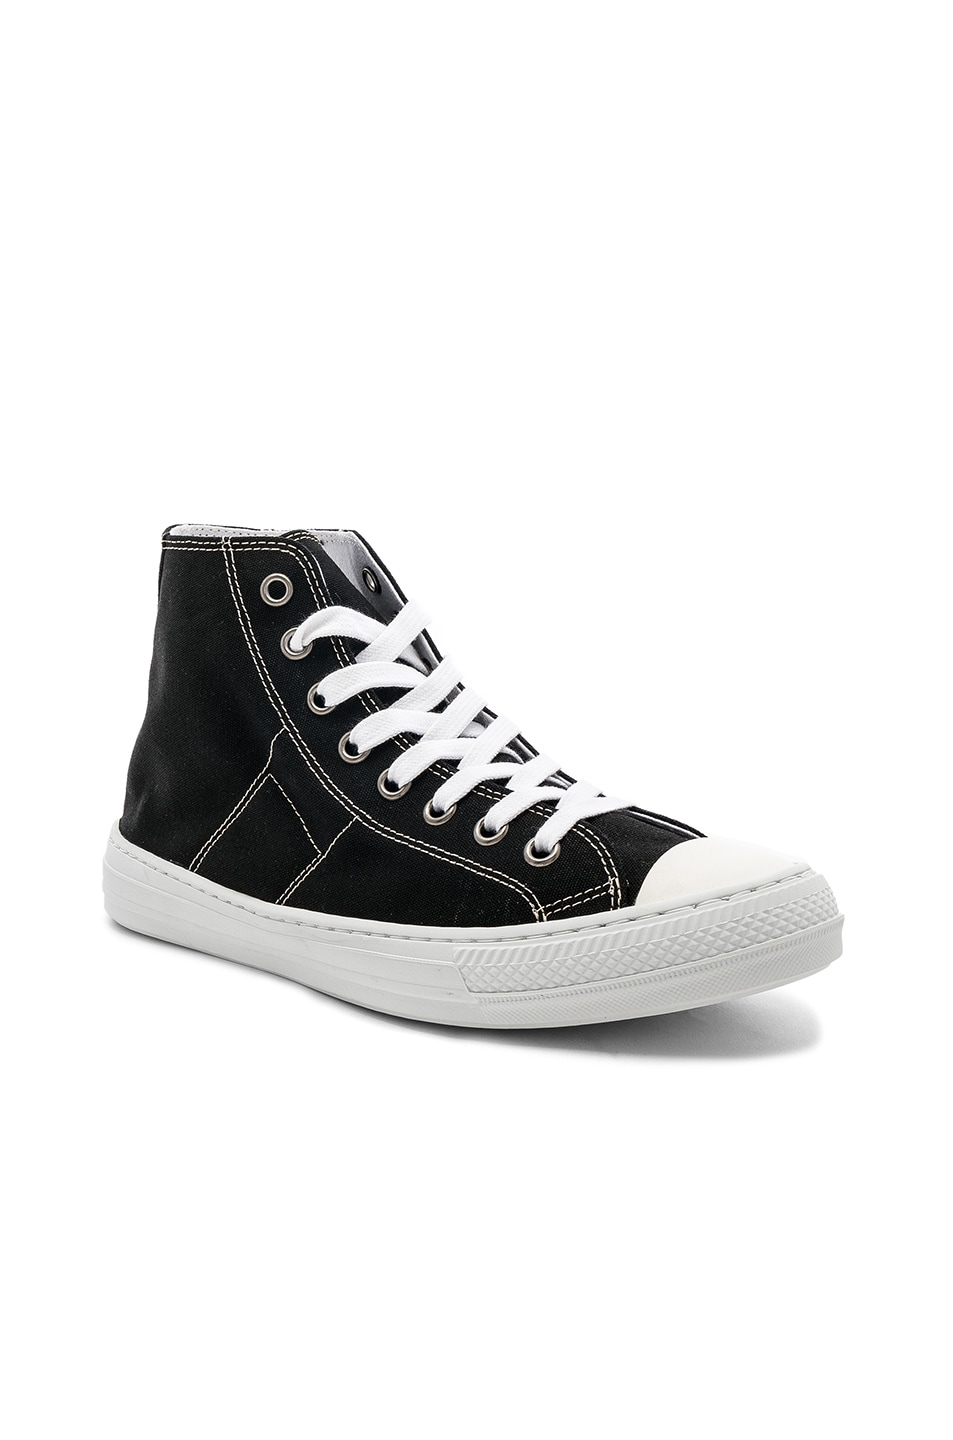 Maison MargielaStereotype High-Top Sneakers 5z1quP4